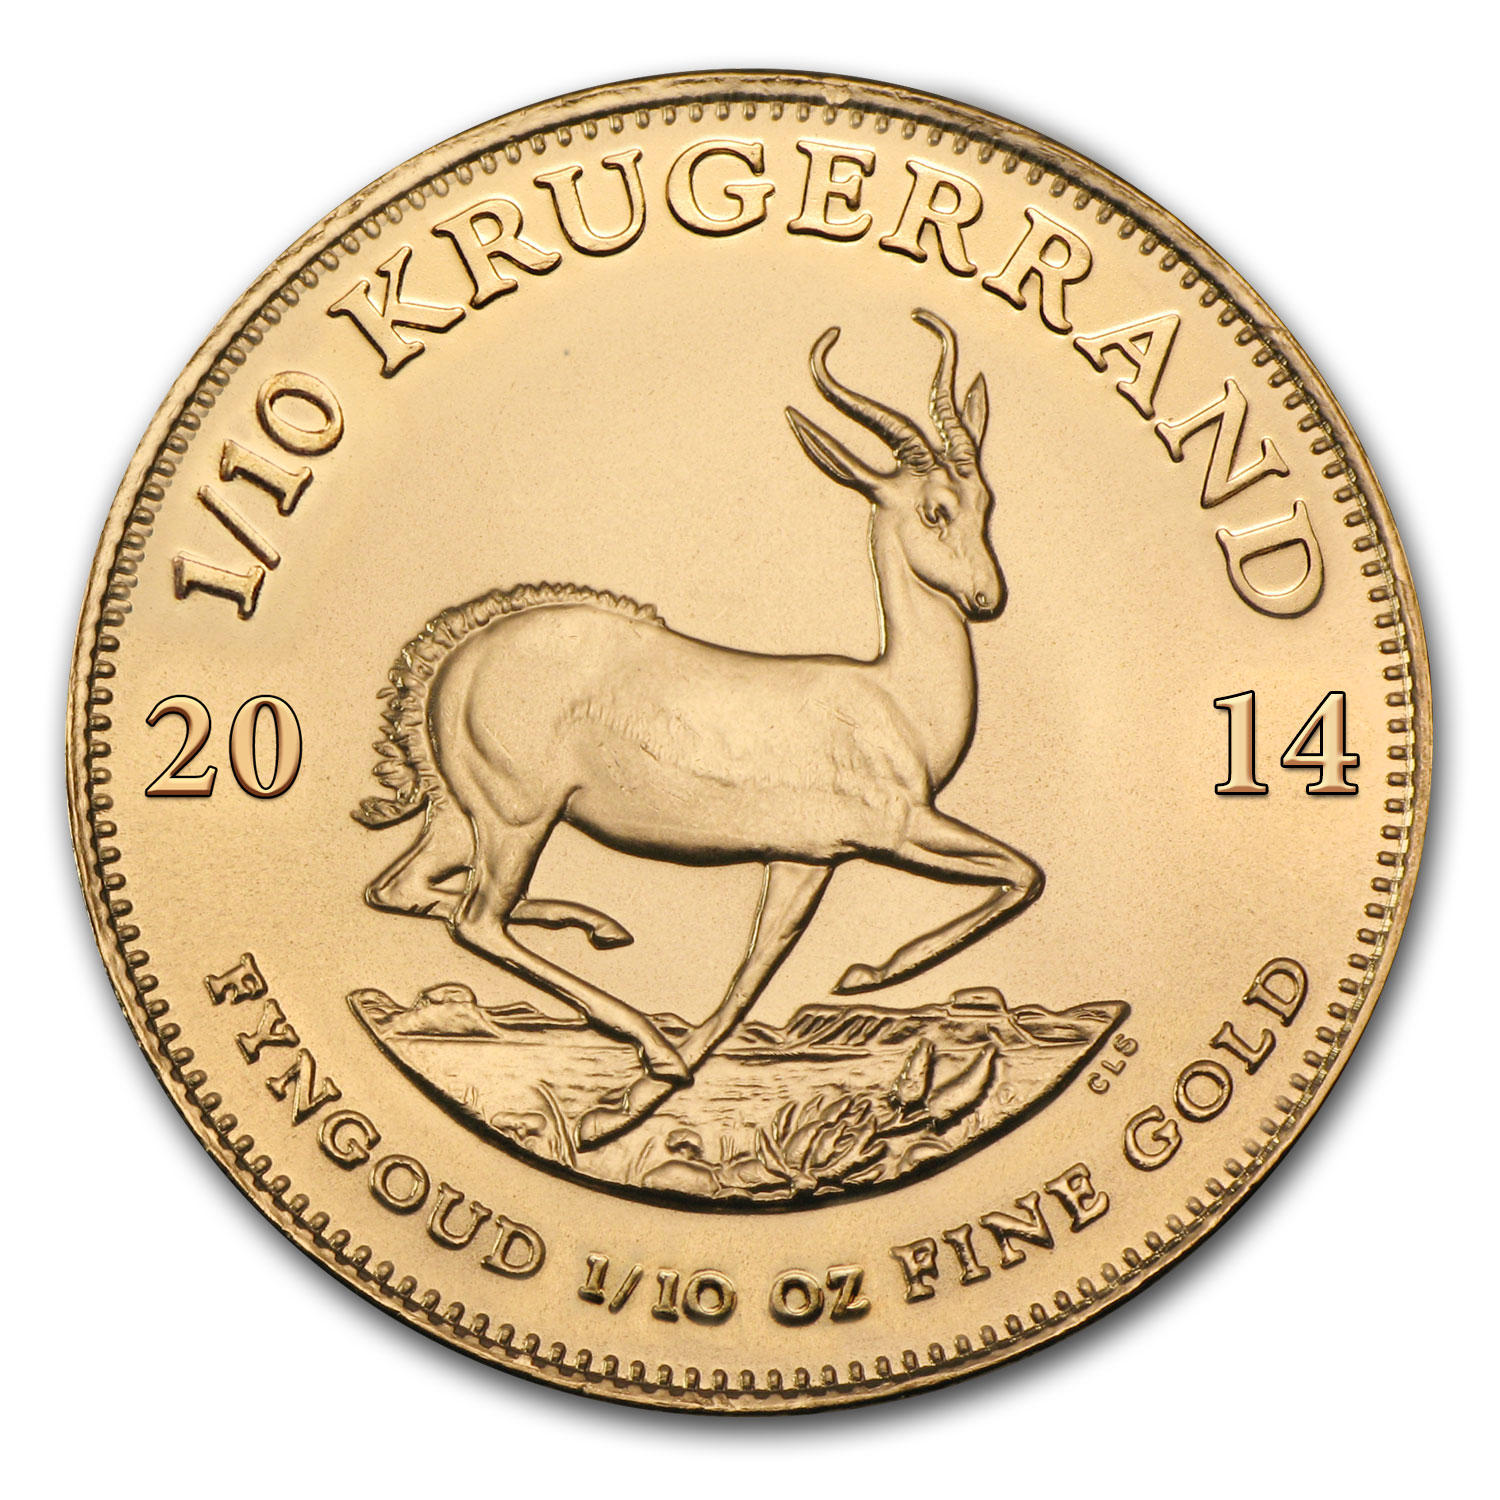 2014 South Africa 1/10 oz Gold Krugerrand